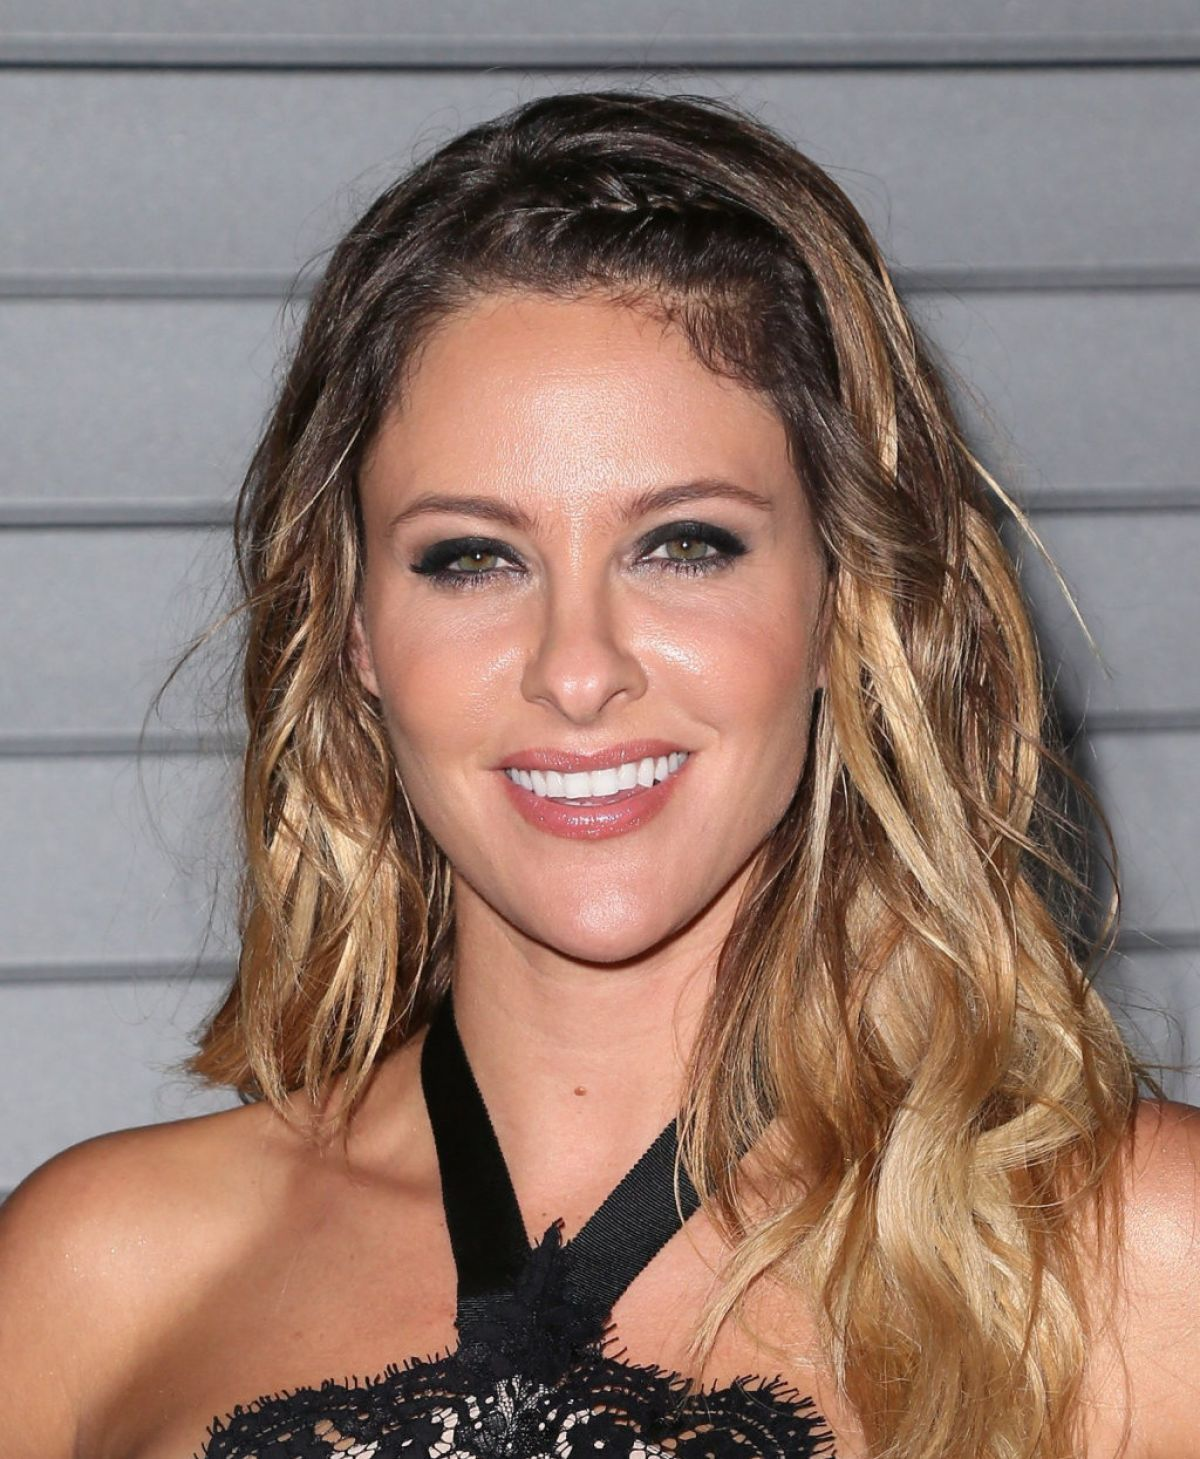 pinemad fouad on faces | pinterest | jill wagner and net worth